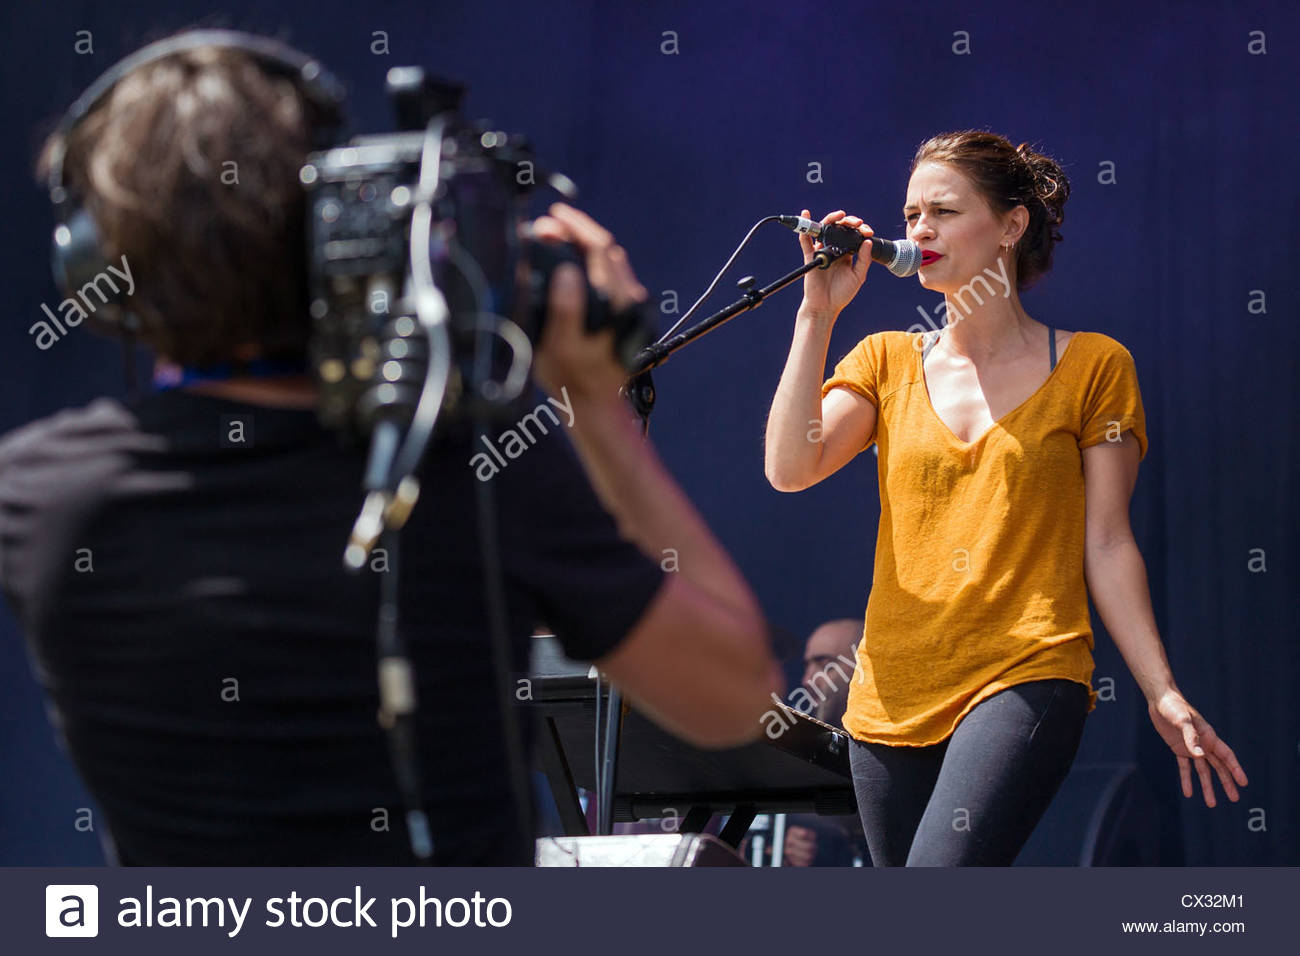 female singer performing live - Stock Image